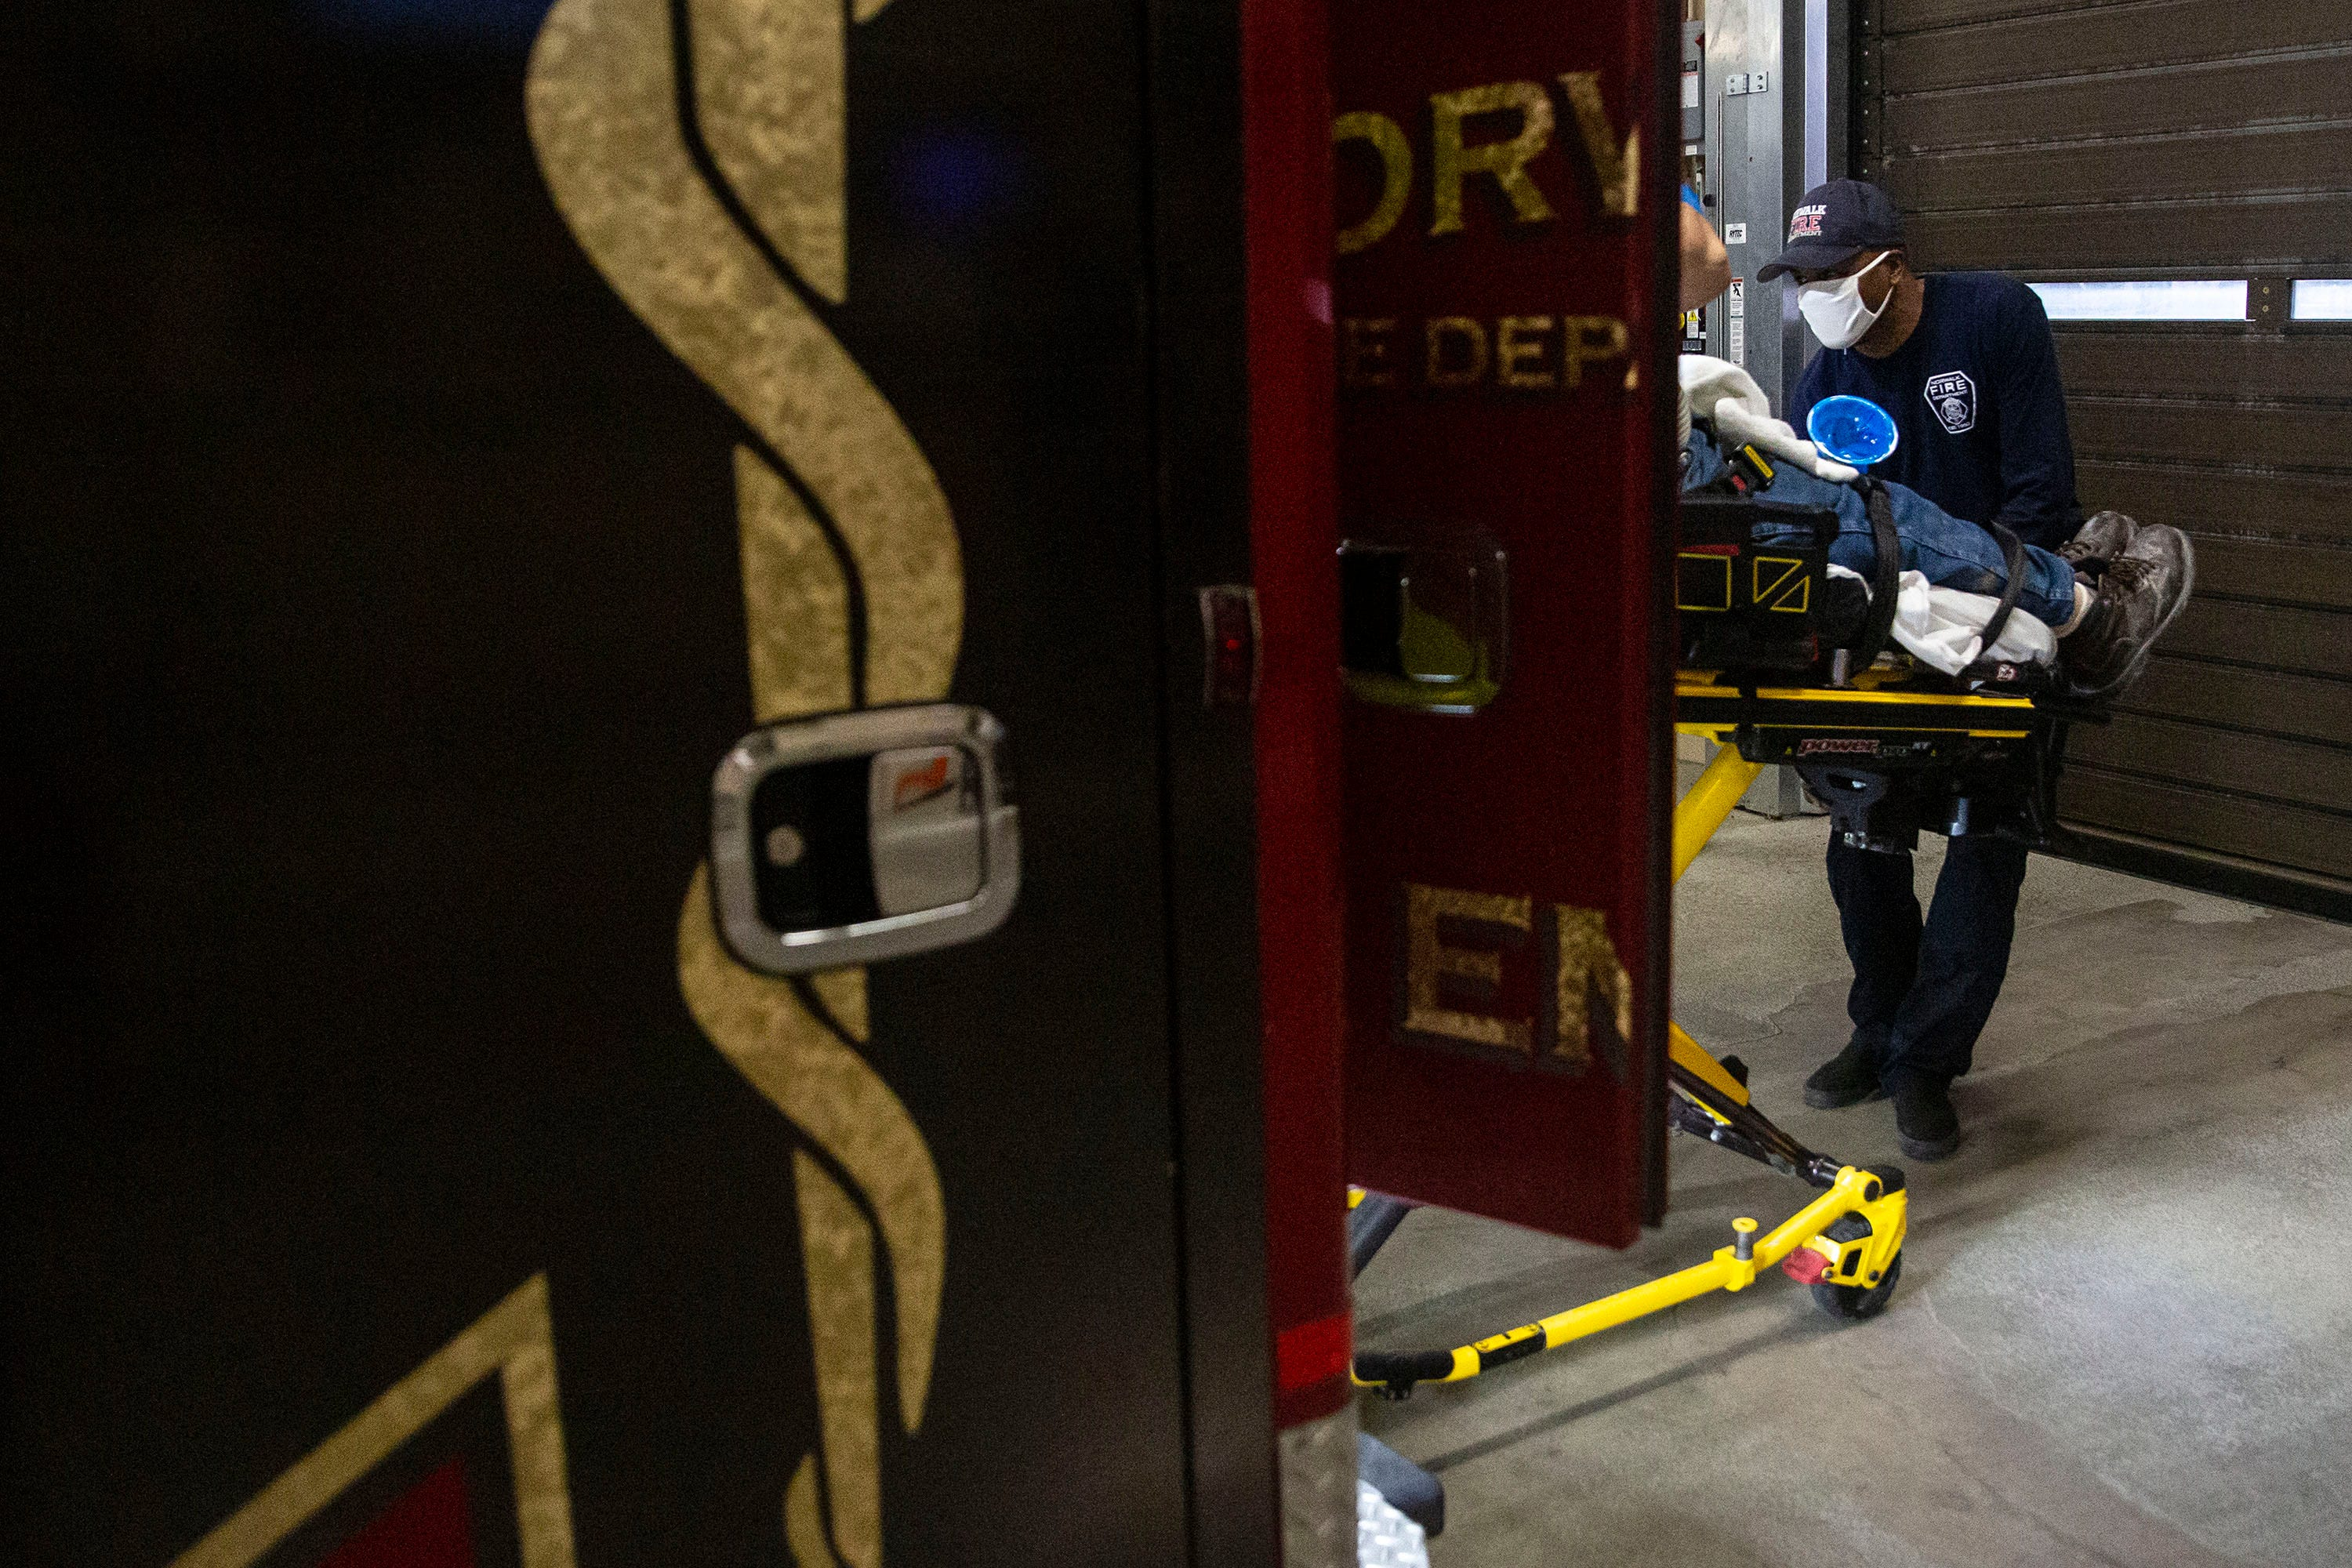 Jeff Price, a Norwalk EMT, brings a patient to the emergency department at Iowa Methodist Medical Center early Friday morning, Sept. 3, 2021, in Des Moines.